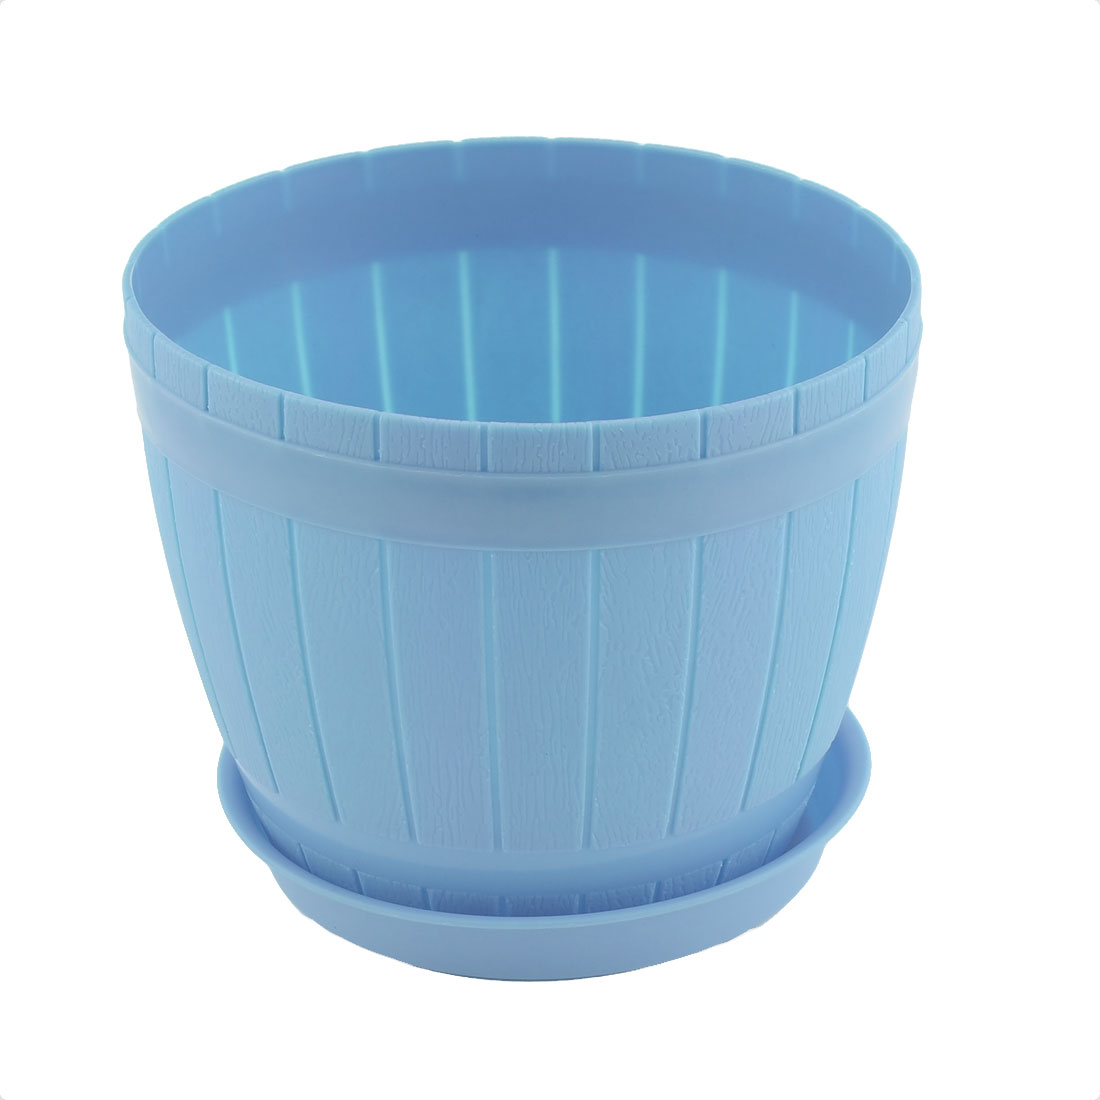 Home Office Hotel Decor Plastic Casks Shape Plant Flower Pot Light Blue w Tray